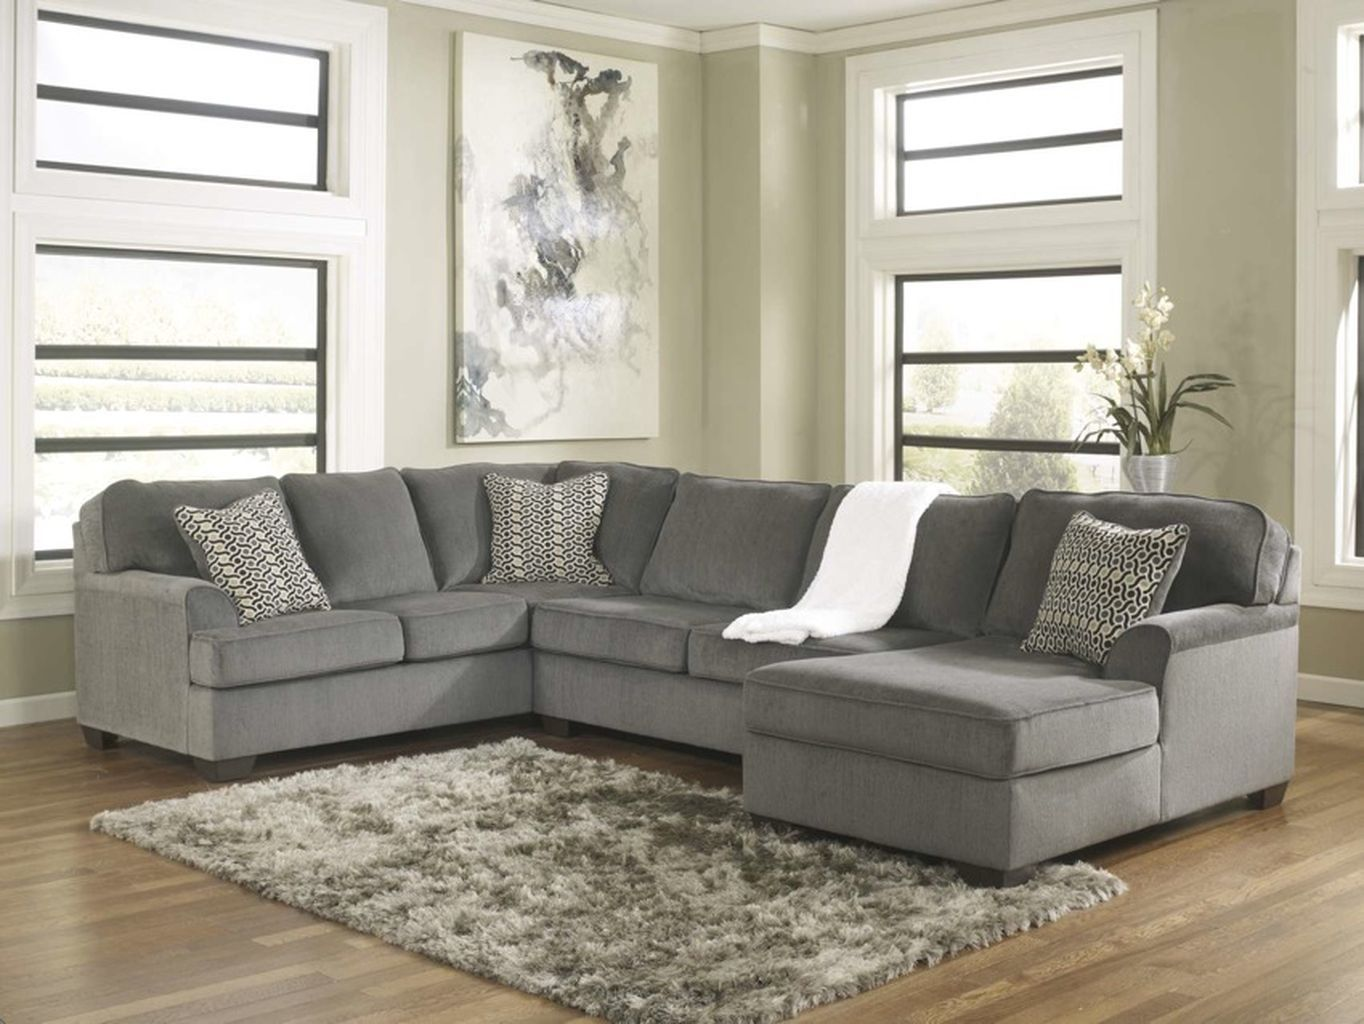 cool 99 comfortable ashley sectional sofa ideas for living room more at http